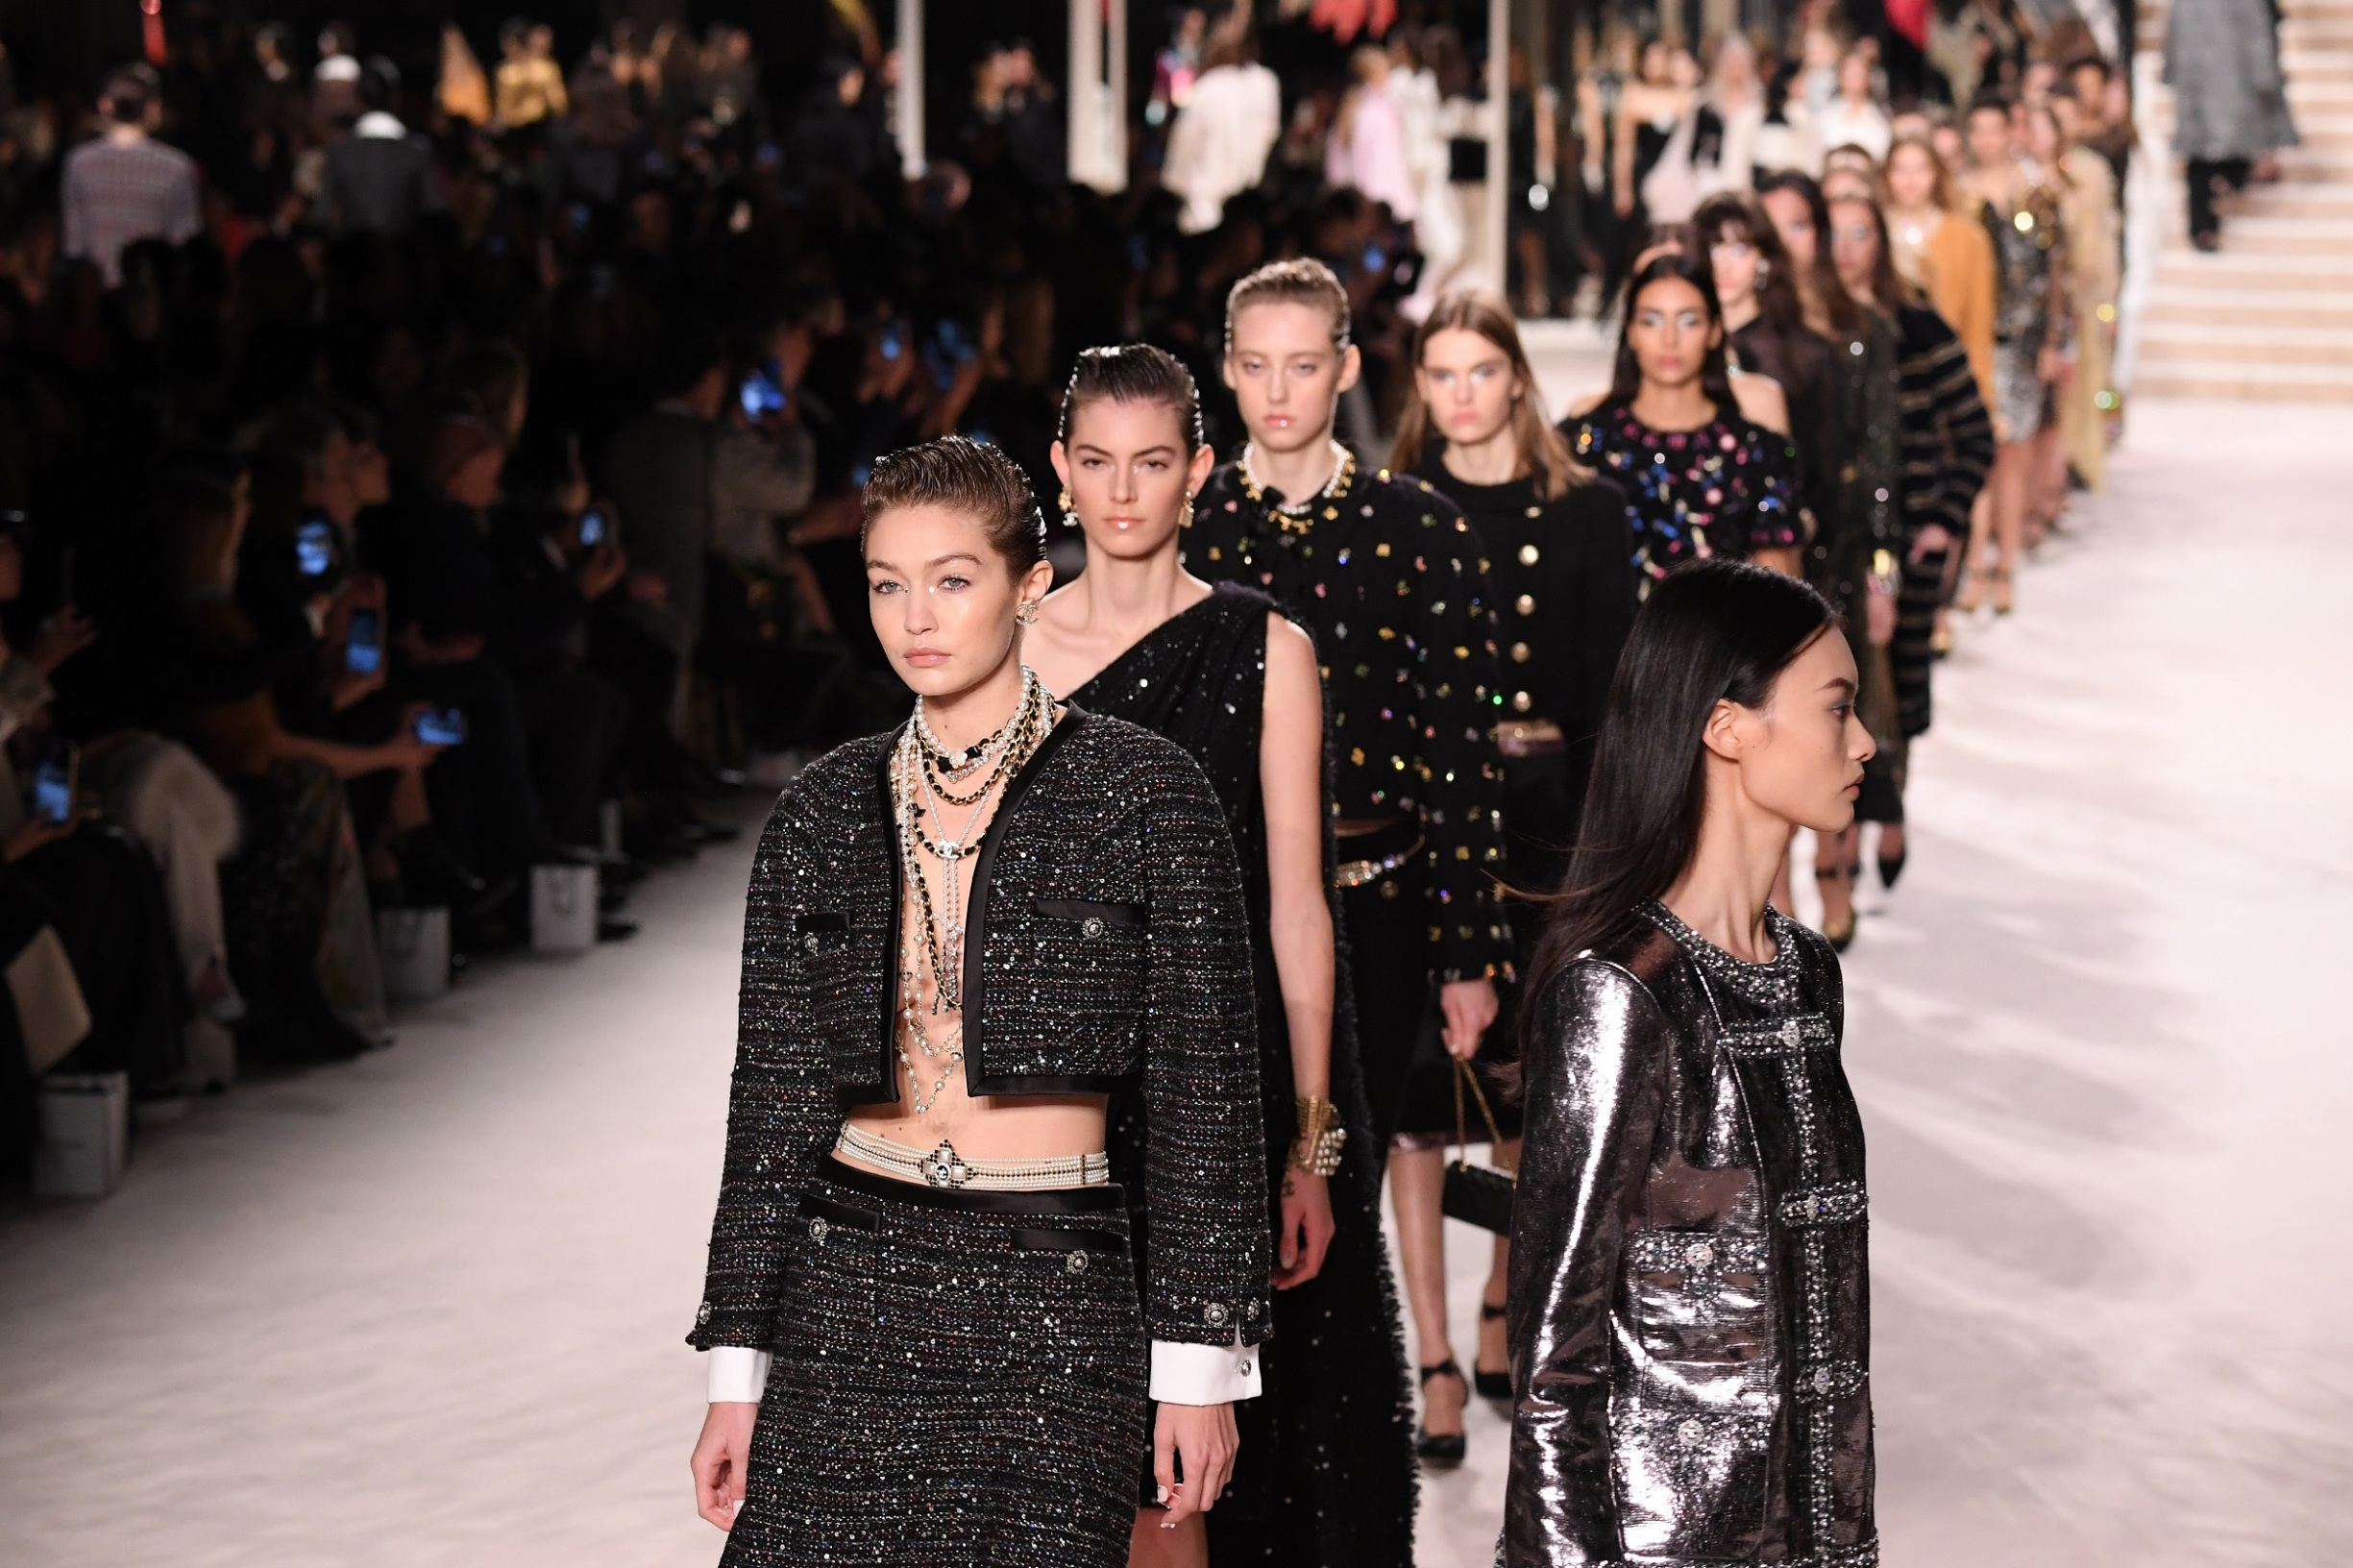 PARIS, FRANCE - DECEMBER 04: Models and Gigi Hadid walk the runway during the Chanel Metiers d'art 2019-2020 show at Le Grand Palais on December 04, 2019 in Paris, France. (Photo by Pascal Le Segretain/Getty Images)